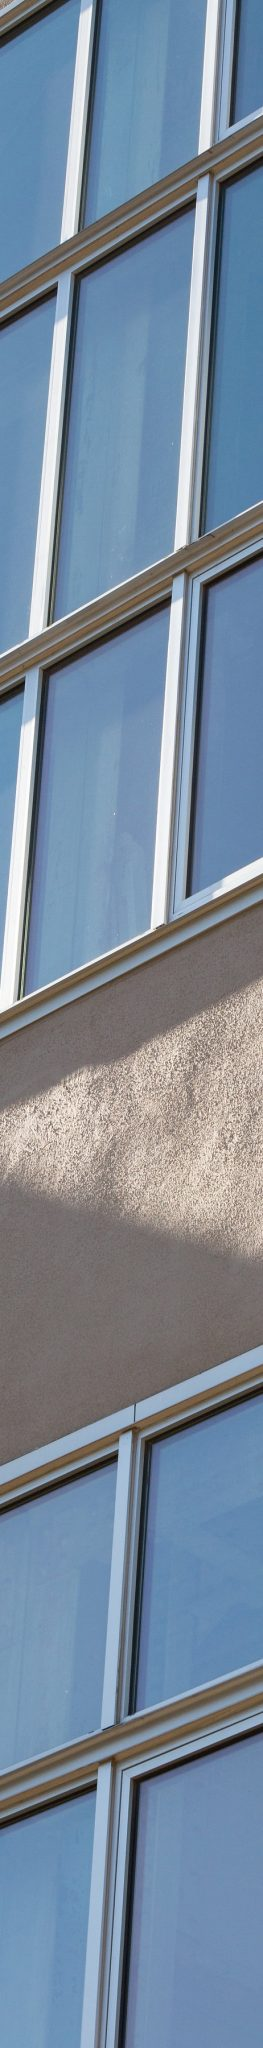 Cost Of Replacing Windows >> 7 Mistakes To Avoid When Replacing Windows St Cloud Window